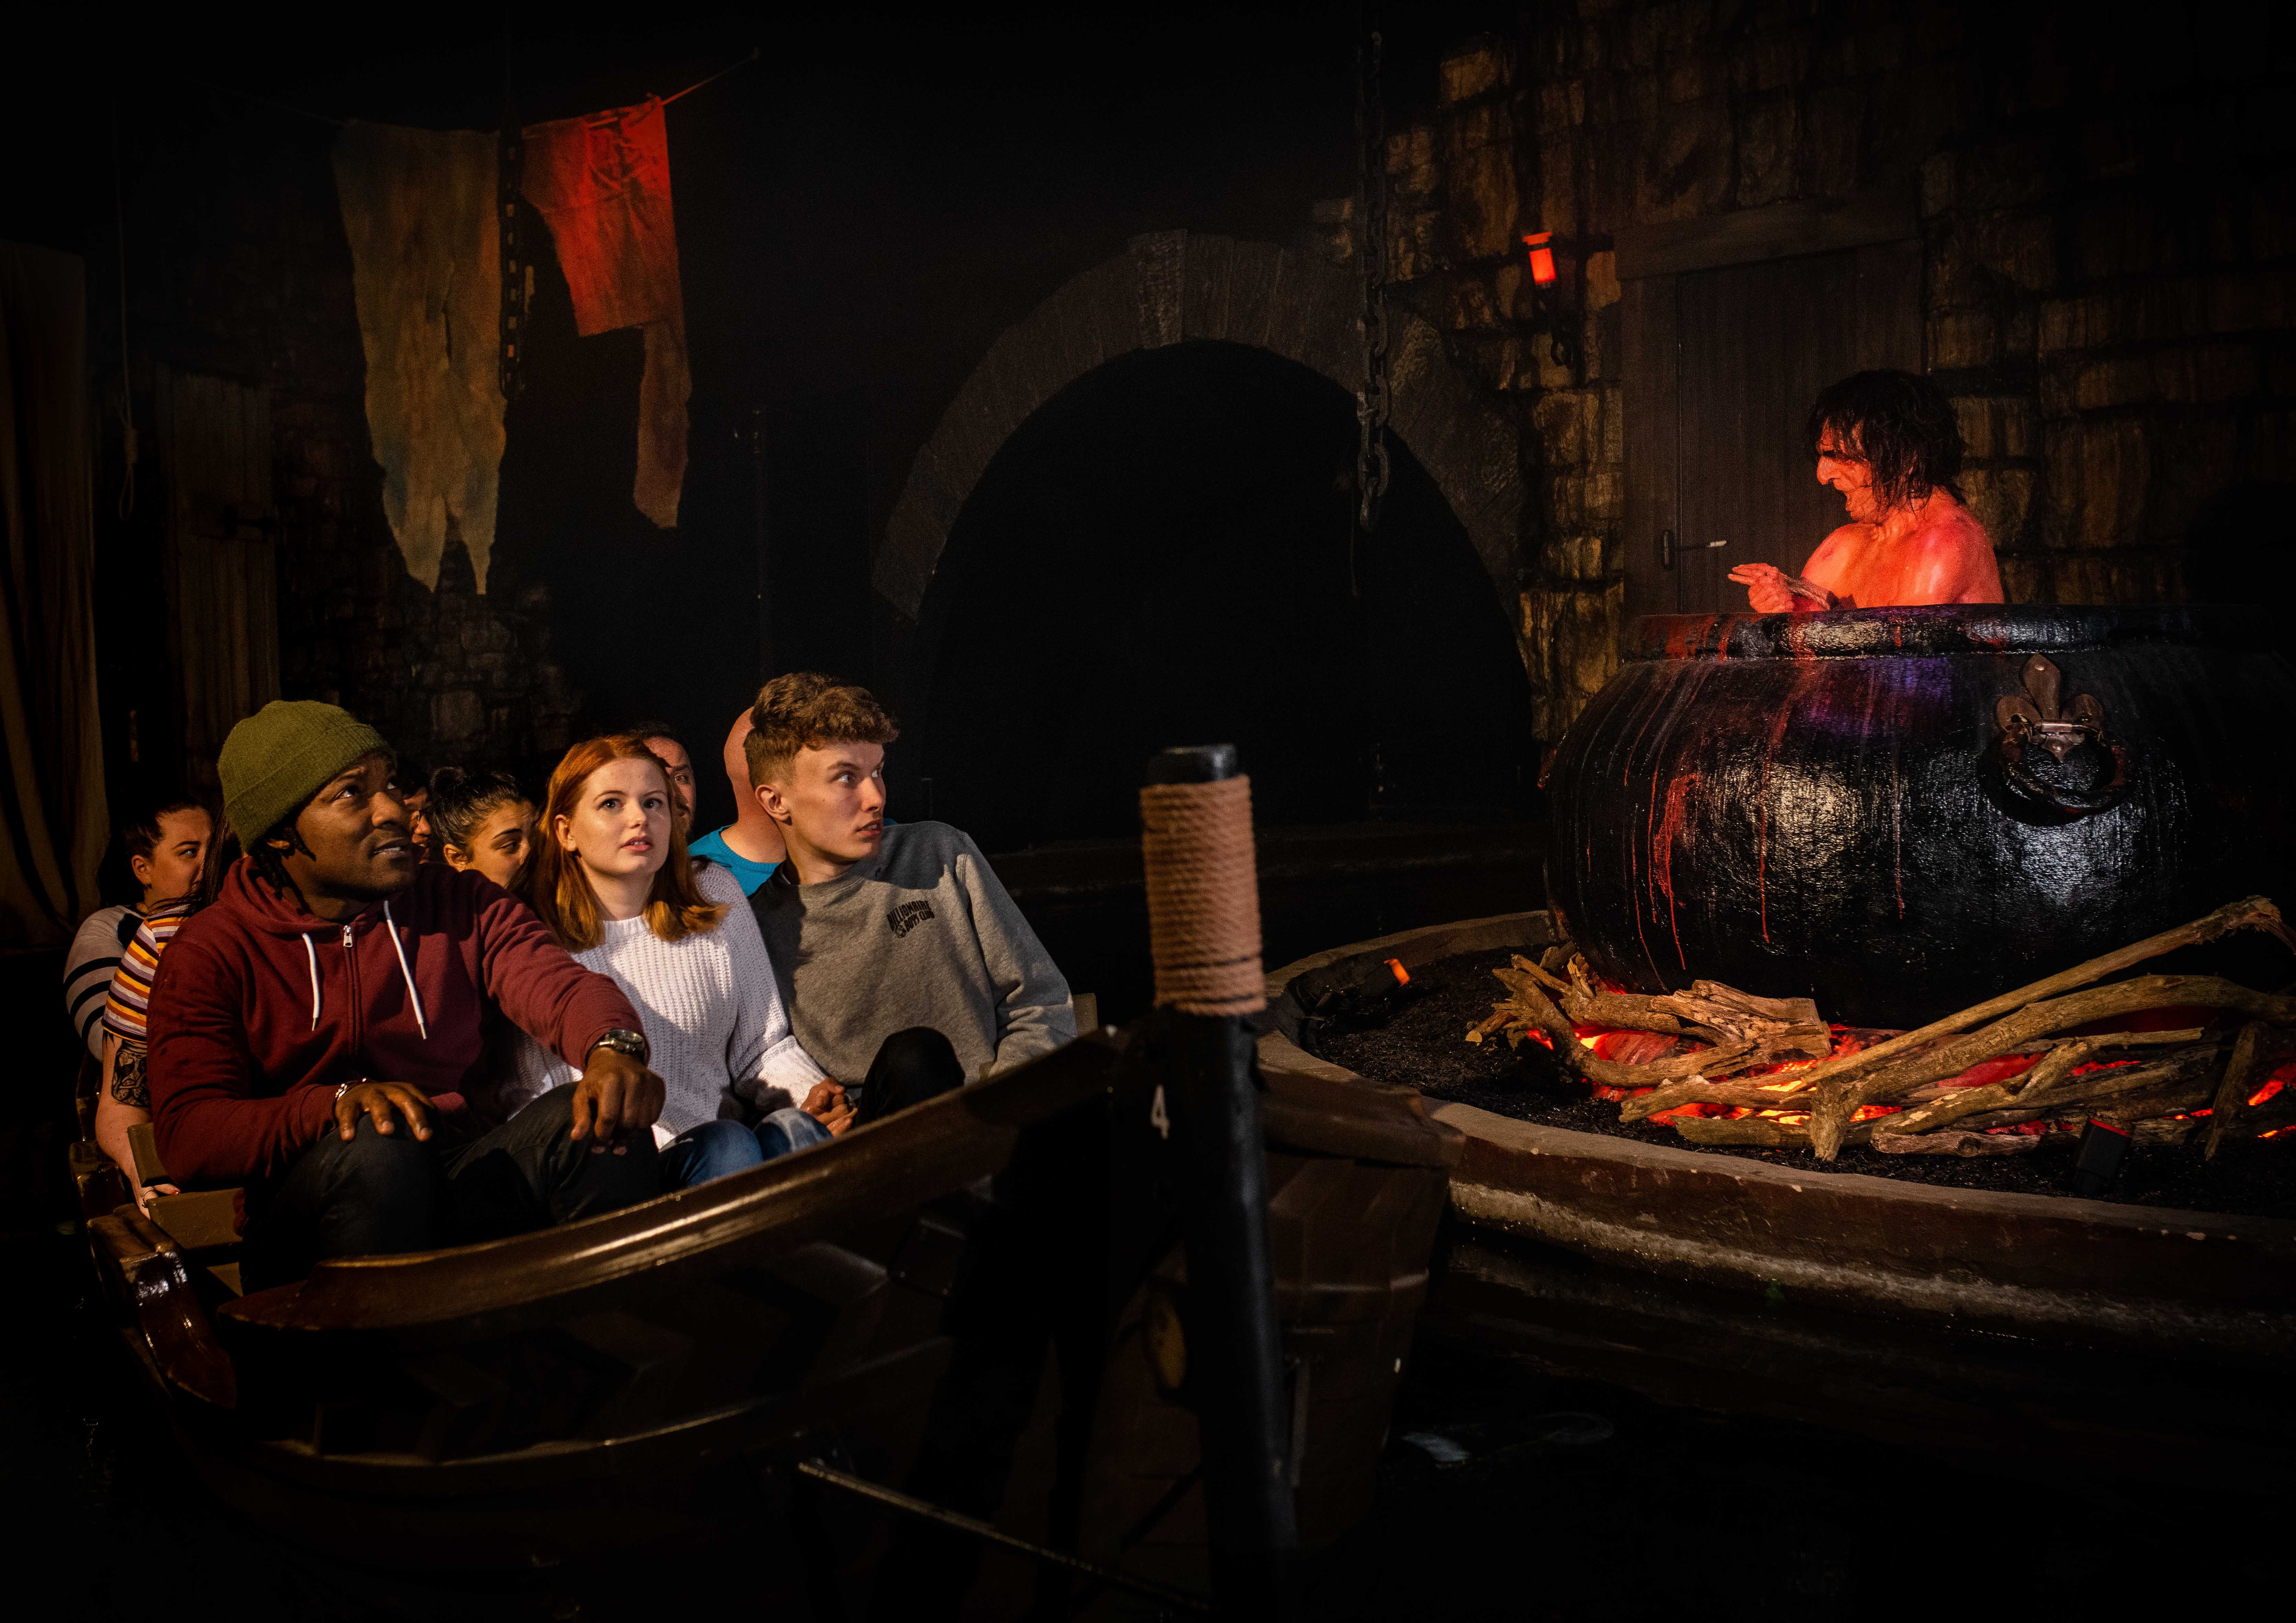 The Boat Ride at The Alton Towers Dungeon